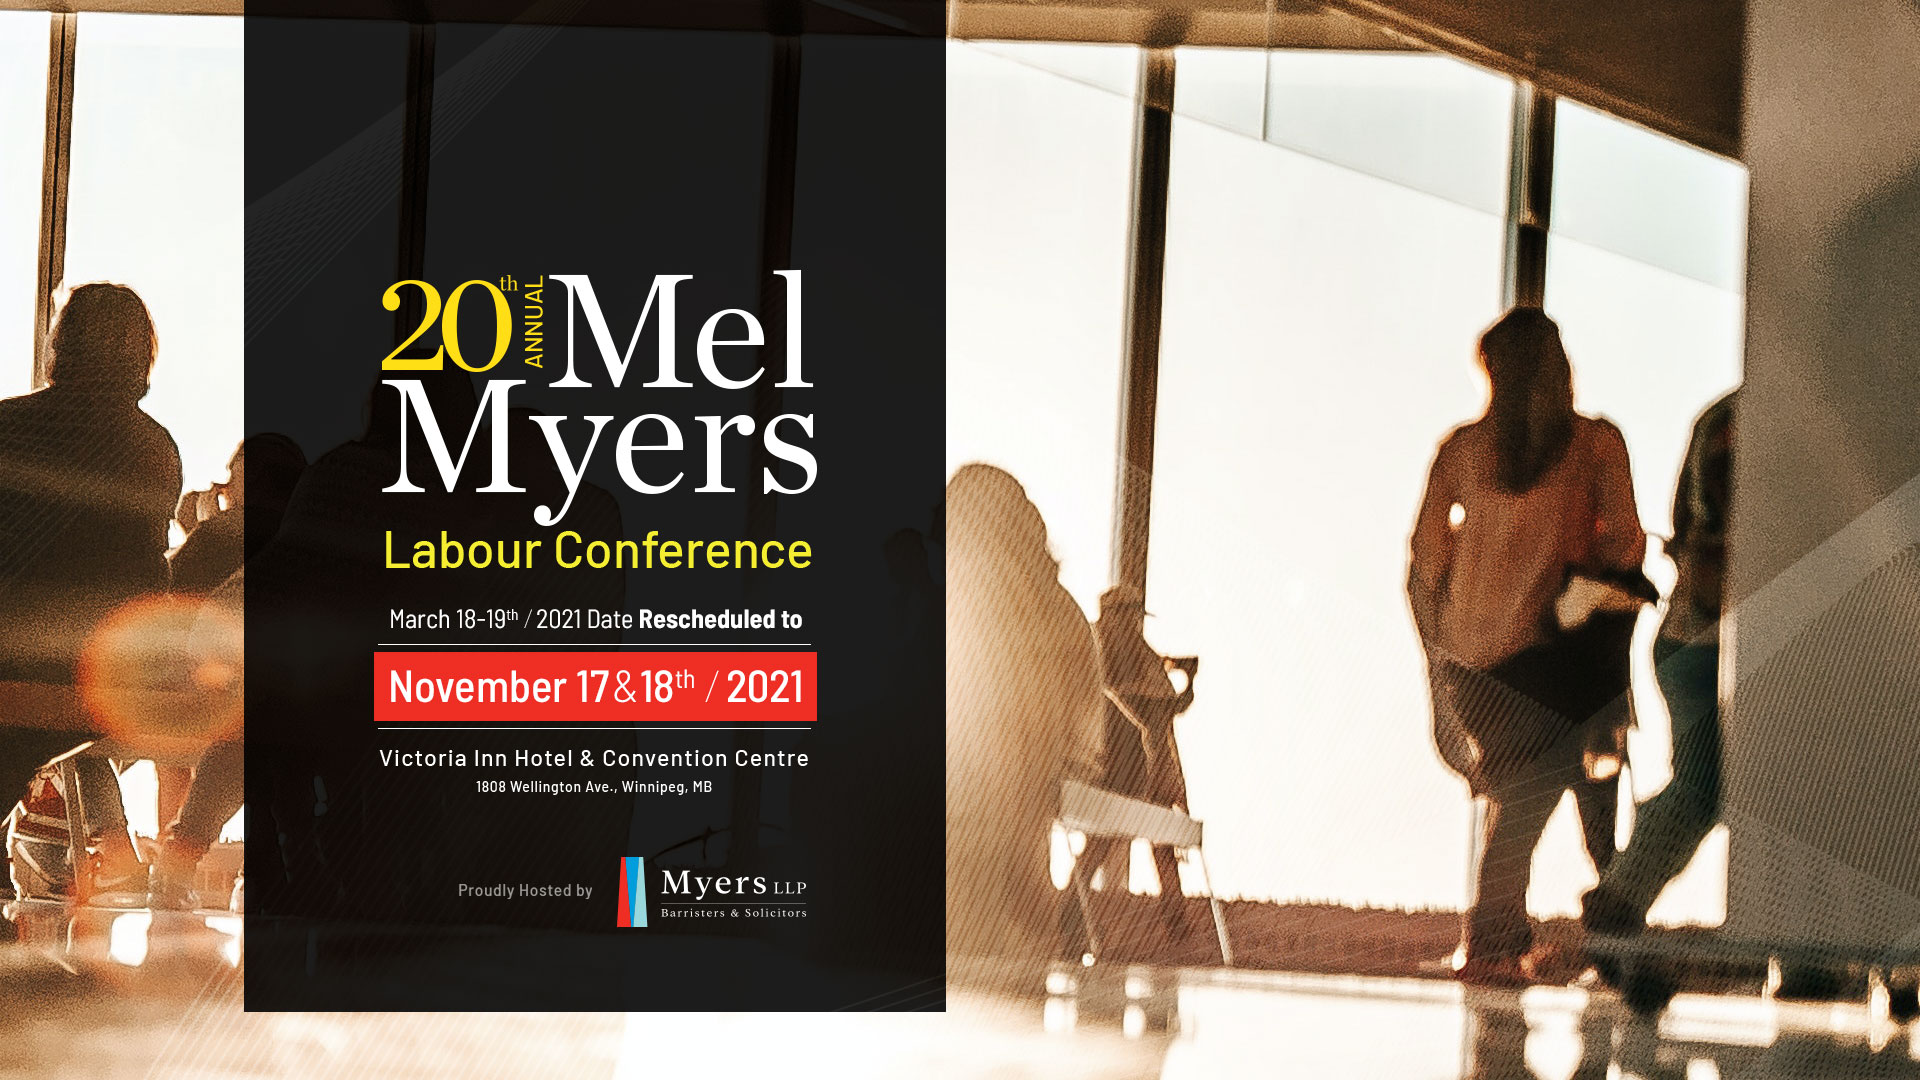 Mel Myers 20th Annual Labour Conference